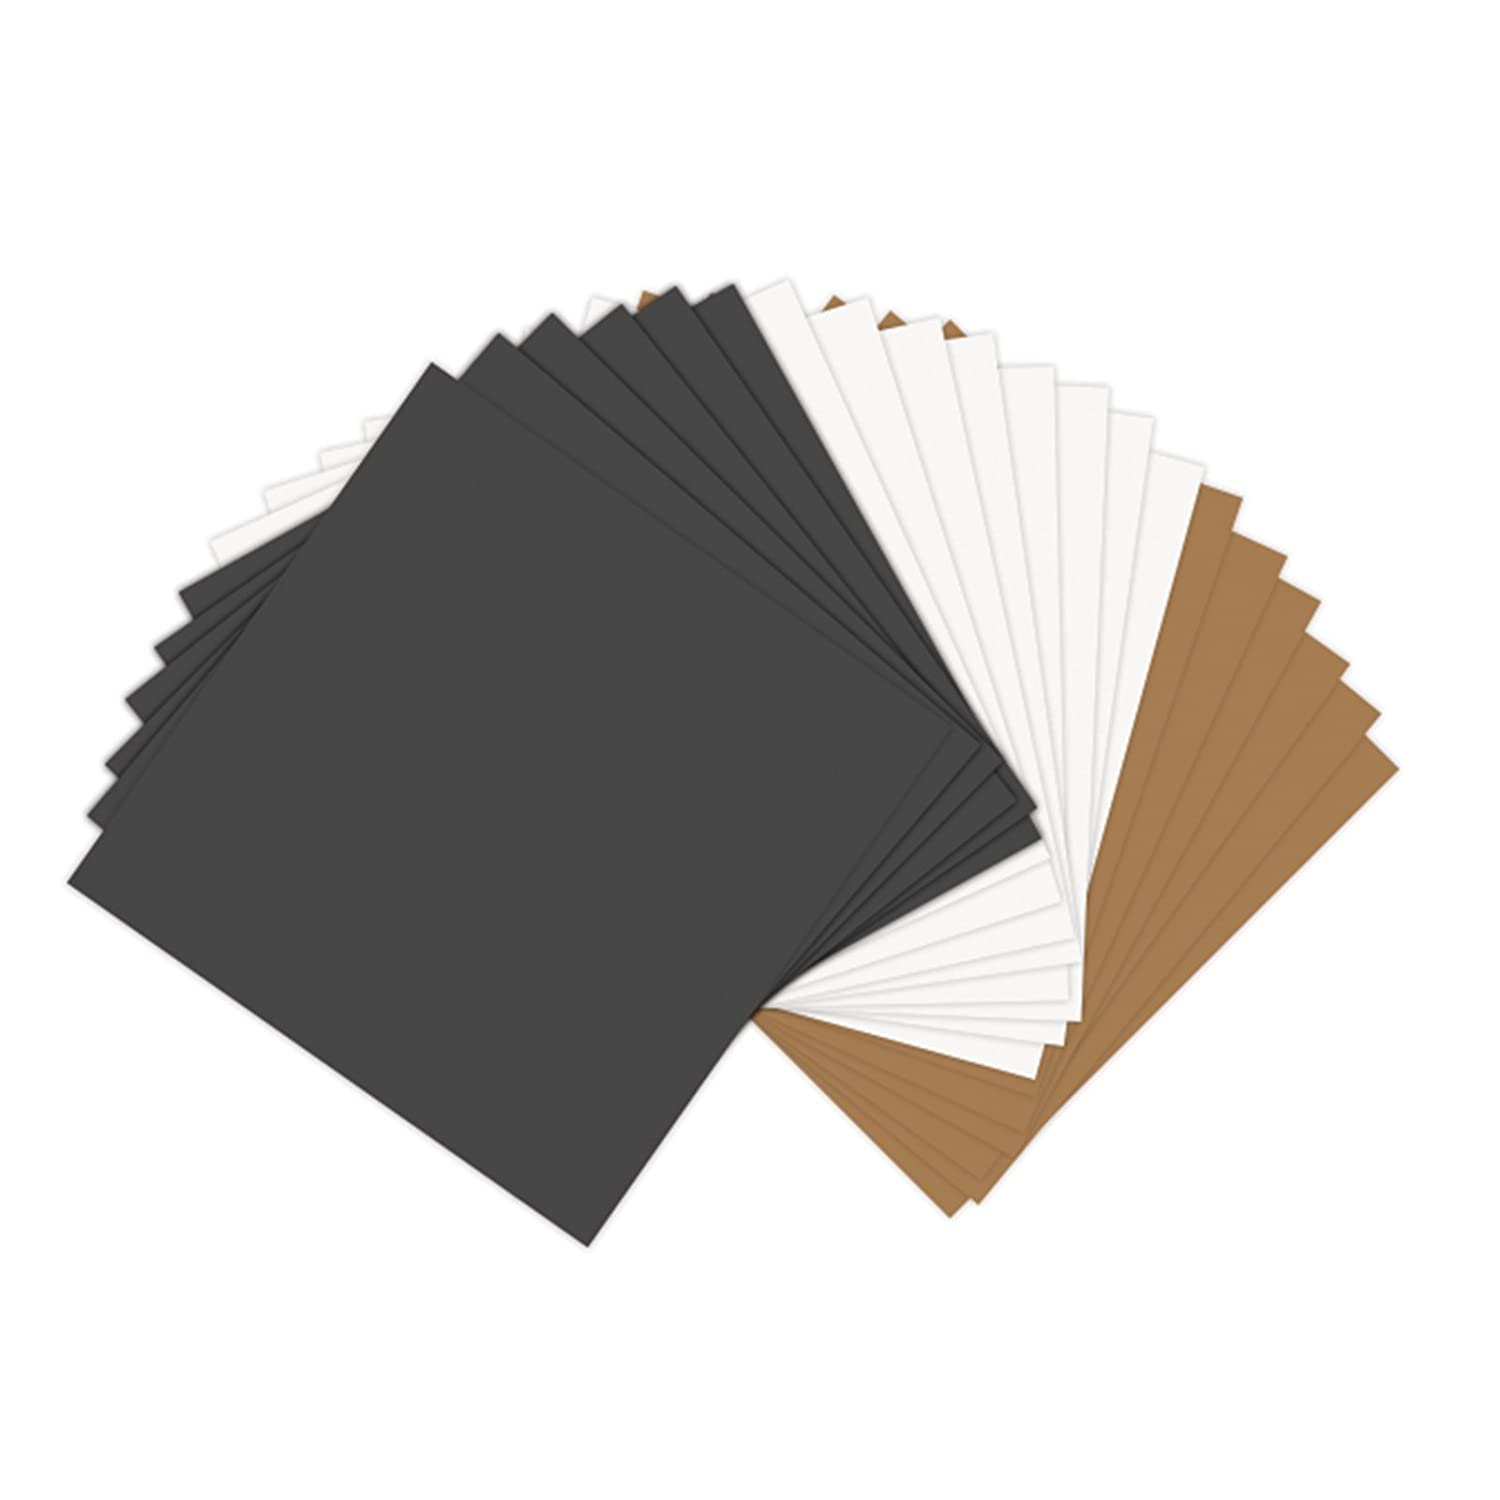 Sizzix 661149 Paper Leather Sheets 8-1/2 by 11 Assorted Basics, 10 Sheets Ellison